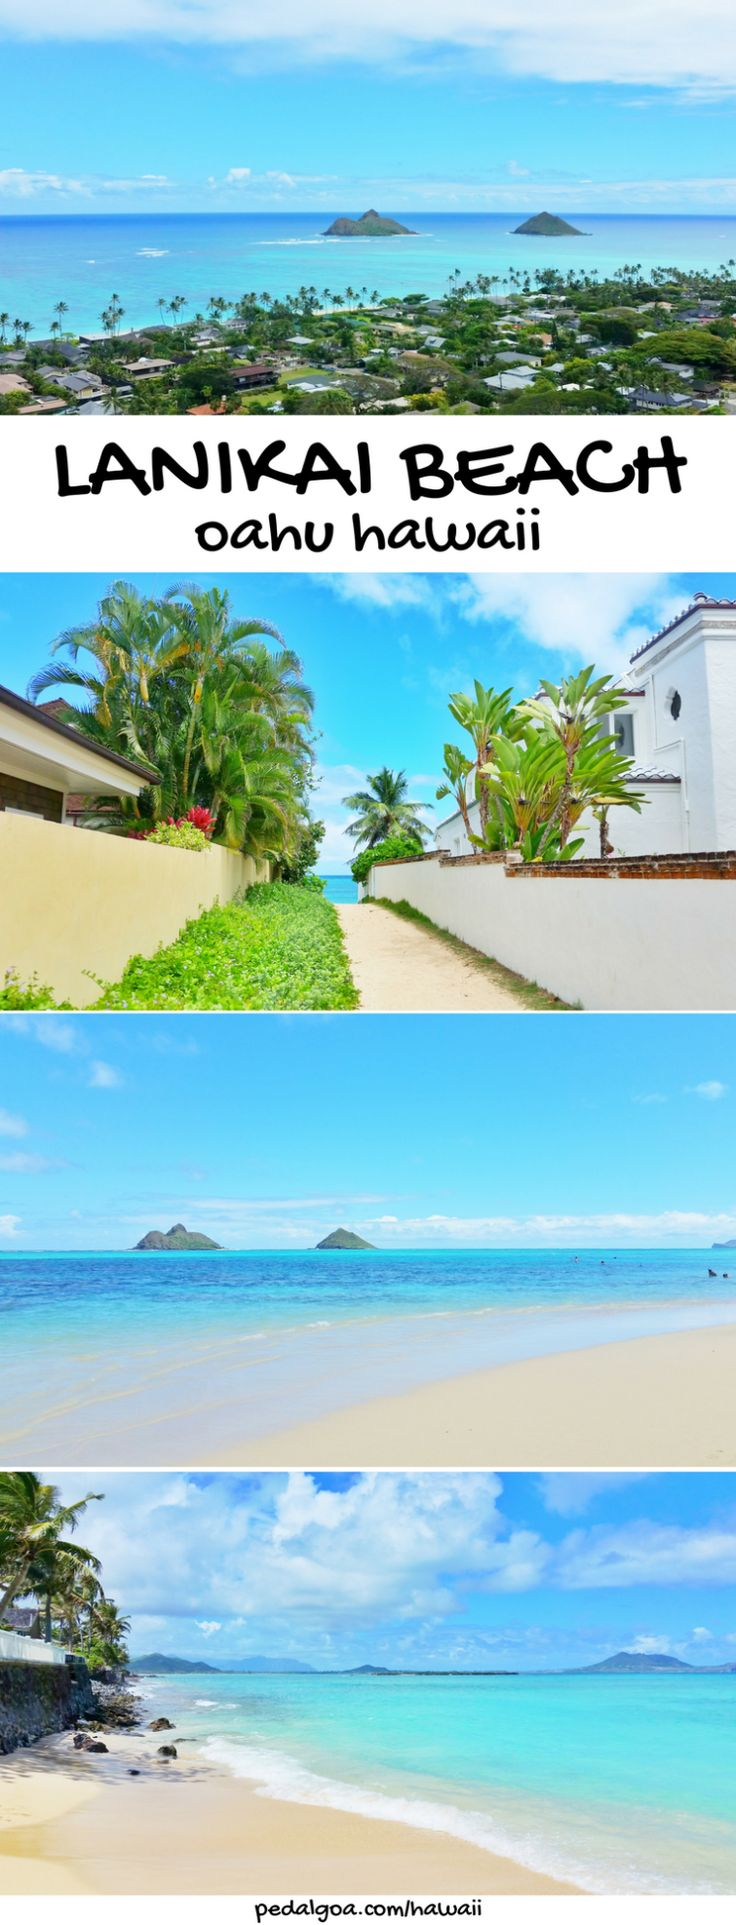 Singles in east honolulu hawaii These Are The 10 Easiest Cities To Get Laid In Hawaii For - RoadSnacks